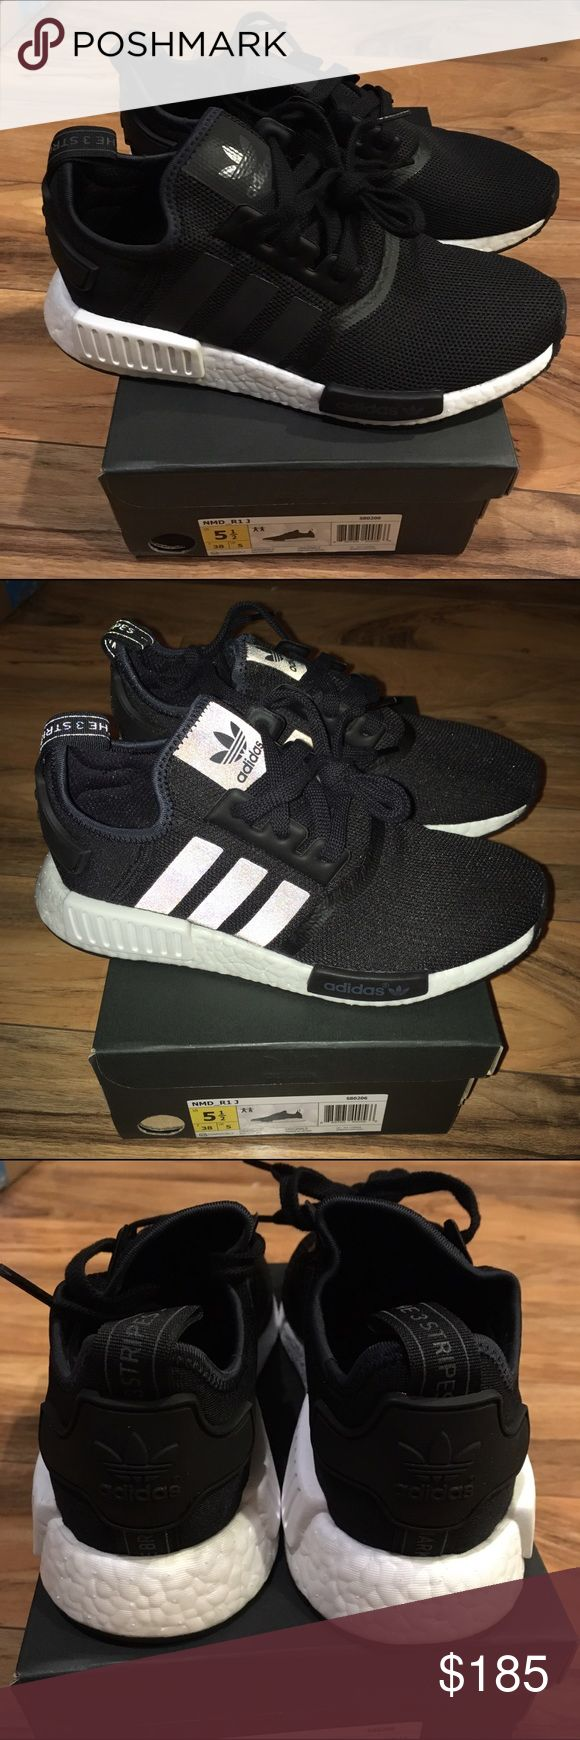 mens adidas nmd runner pk adidas nmd r1 womens 70s fashion